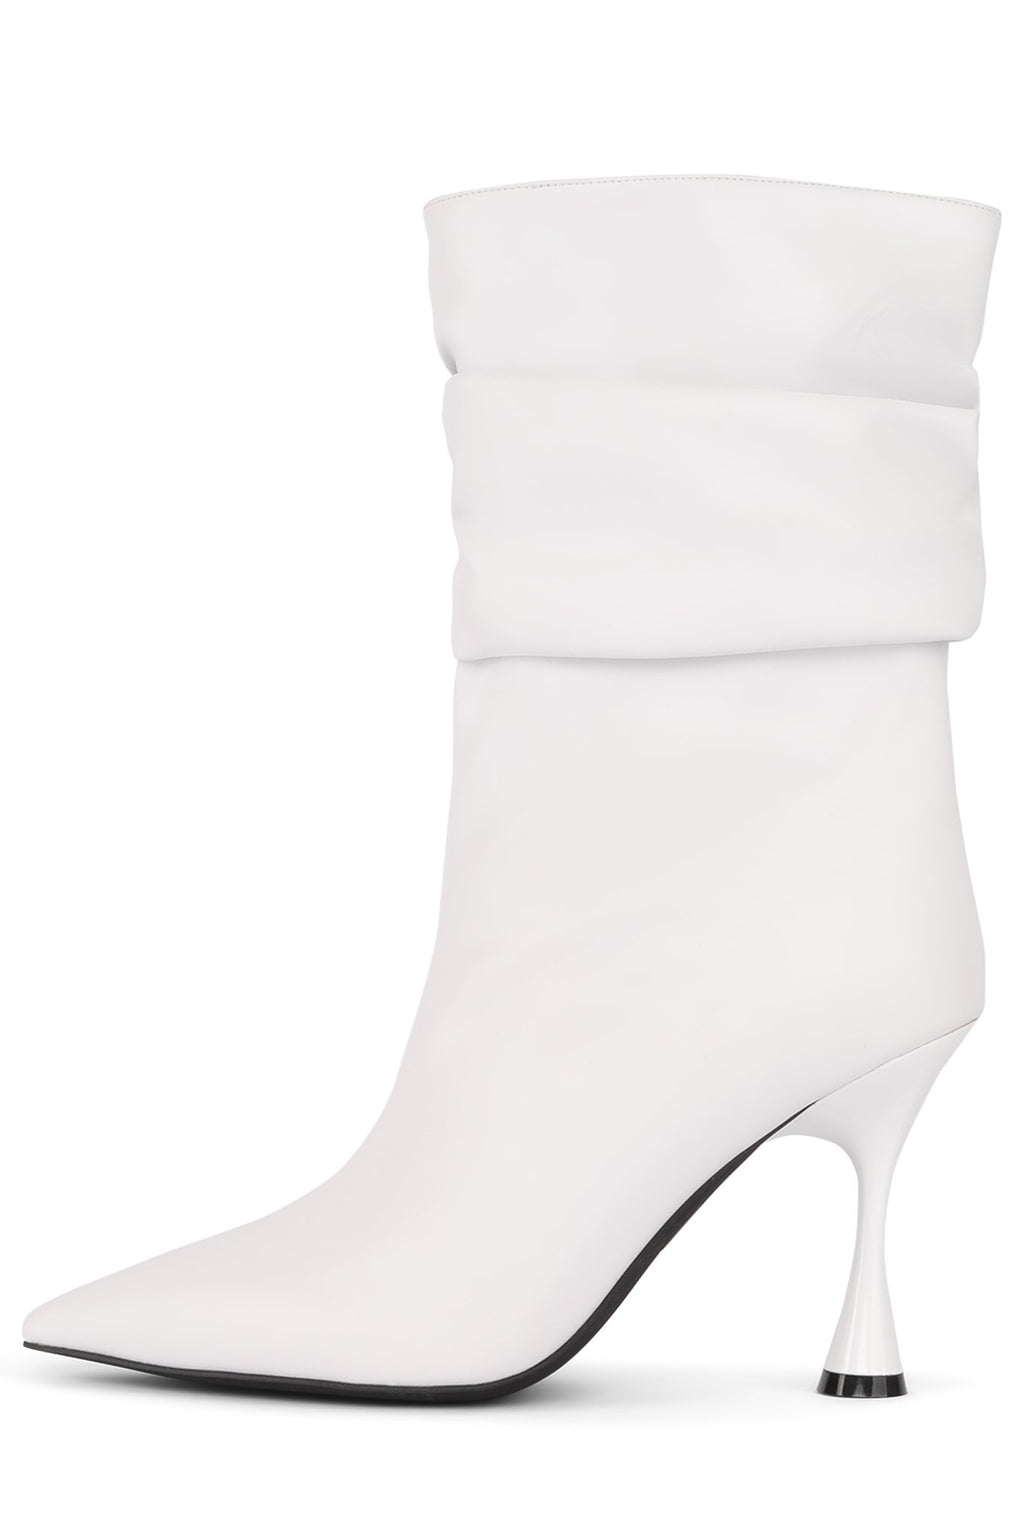 GUILLAUME Mid-Calf Boot Jeffrey Campbell White 6